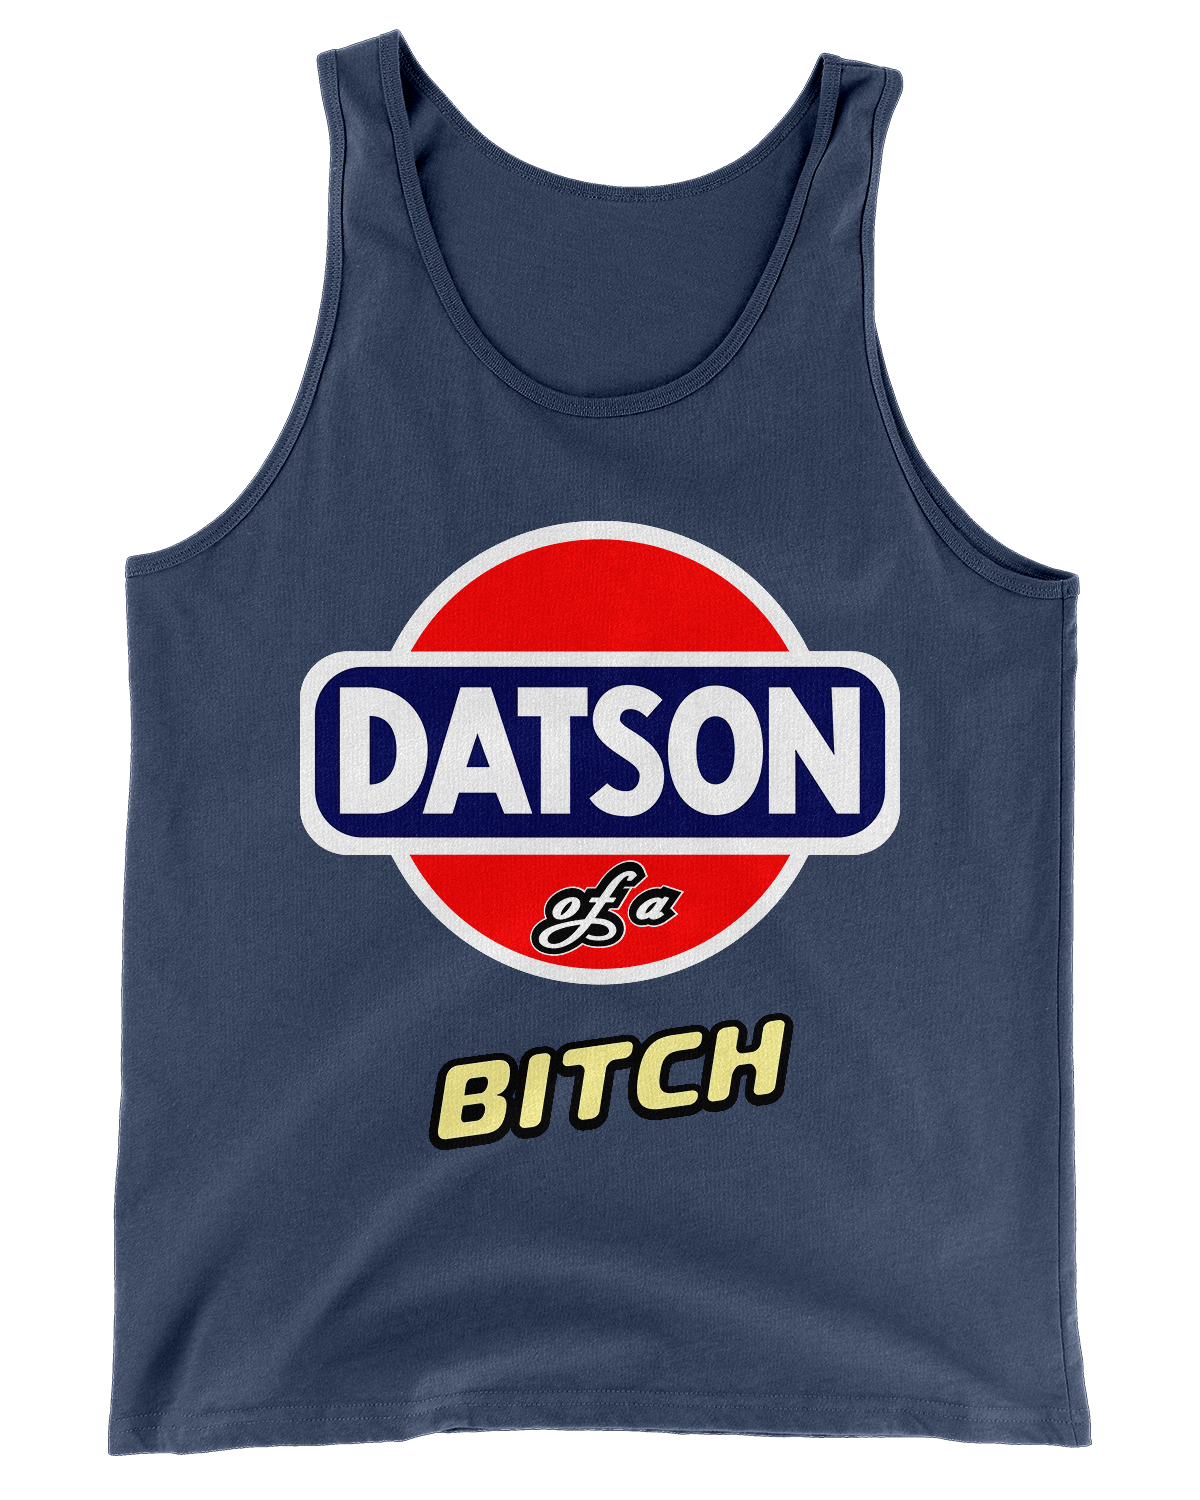 Datson of a B!! - shop.guyhumor.com